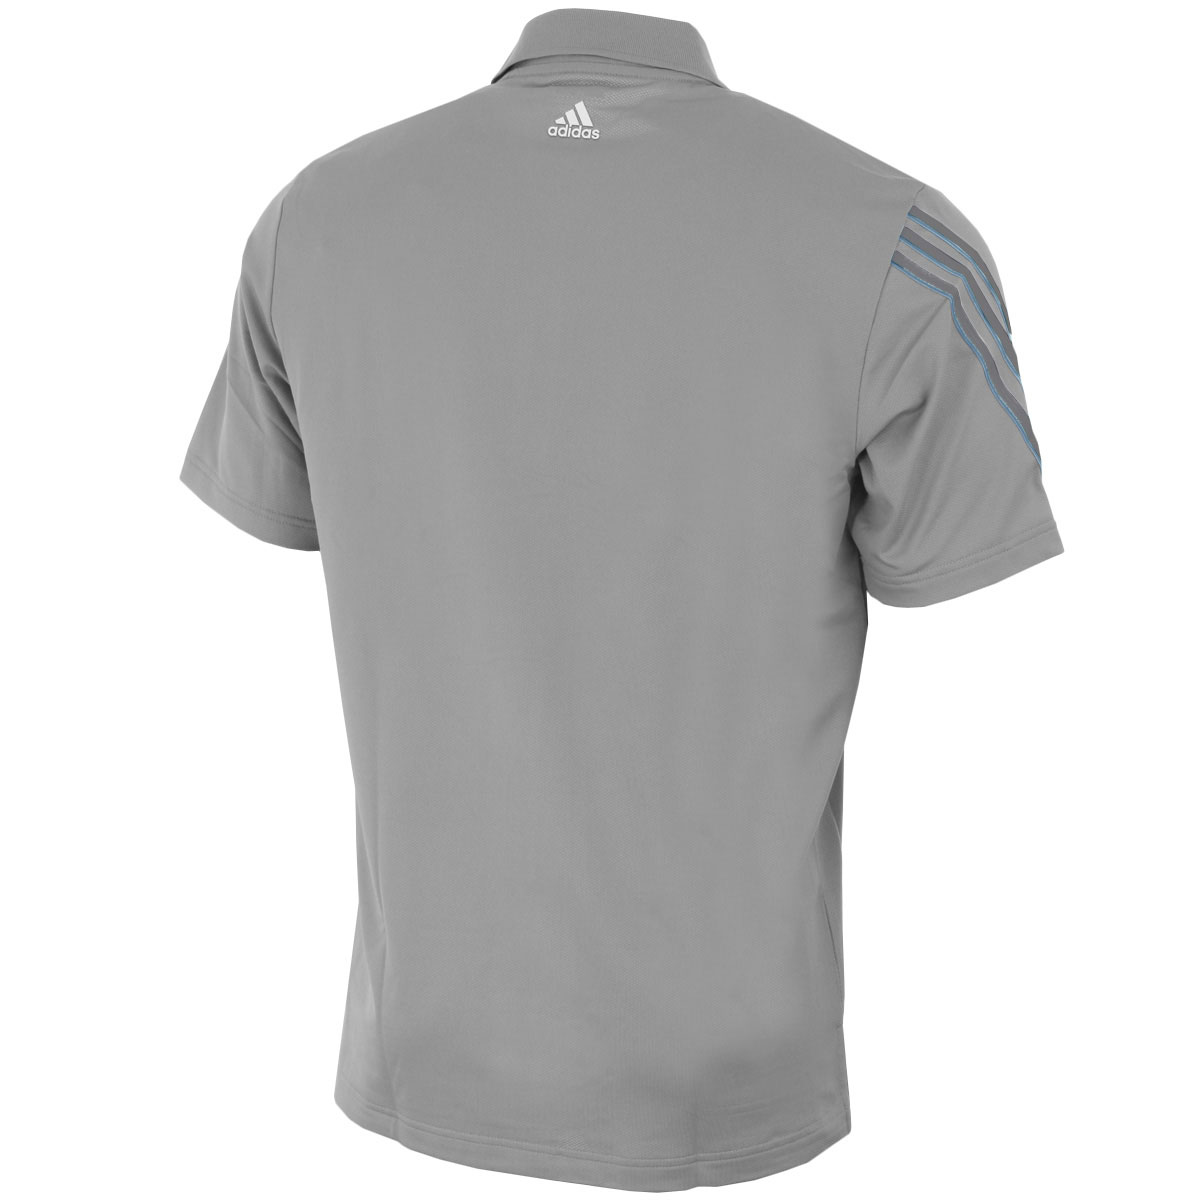 adidas polyester golf shirts